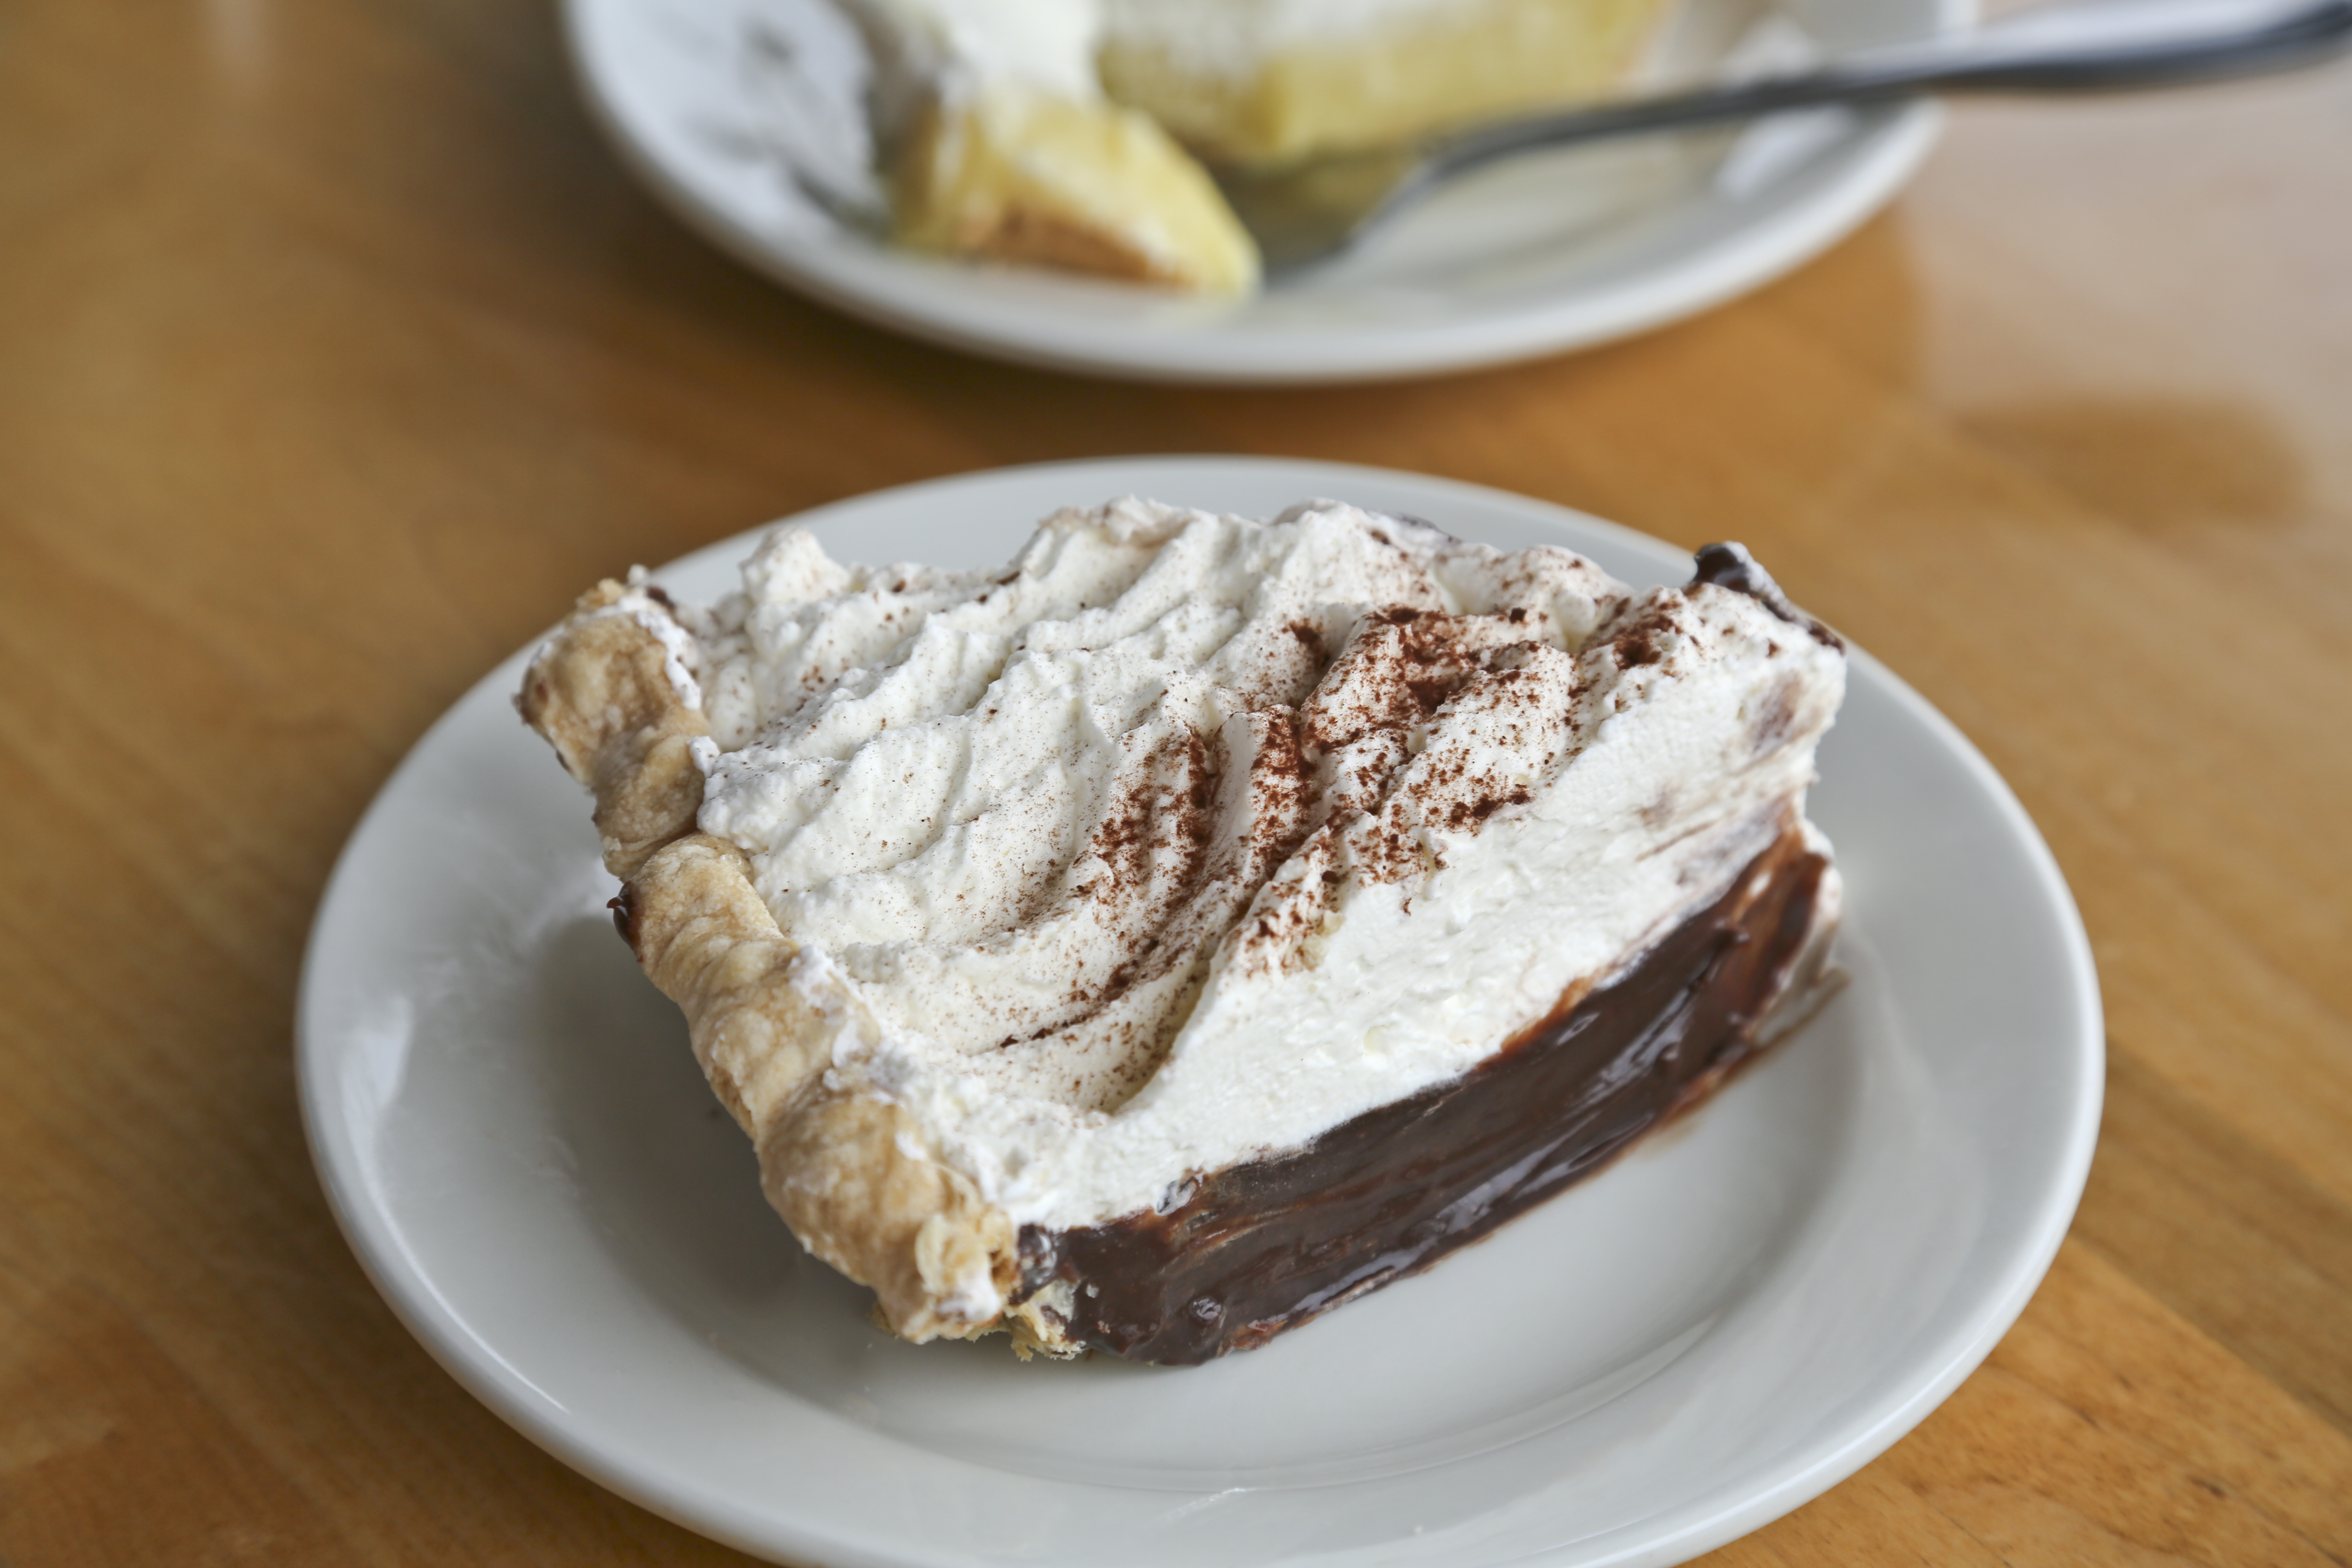 https://alabama-travel.s3.amazonaws.com/partners-uploads/photo/image/549b1838c913c76ecd000076/_012_jnn_chocolate_pie_horiz.jpg